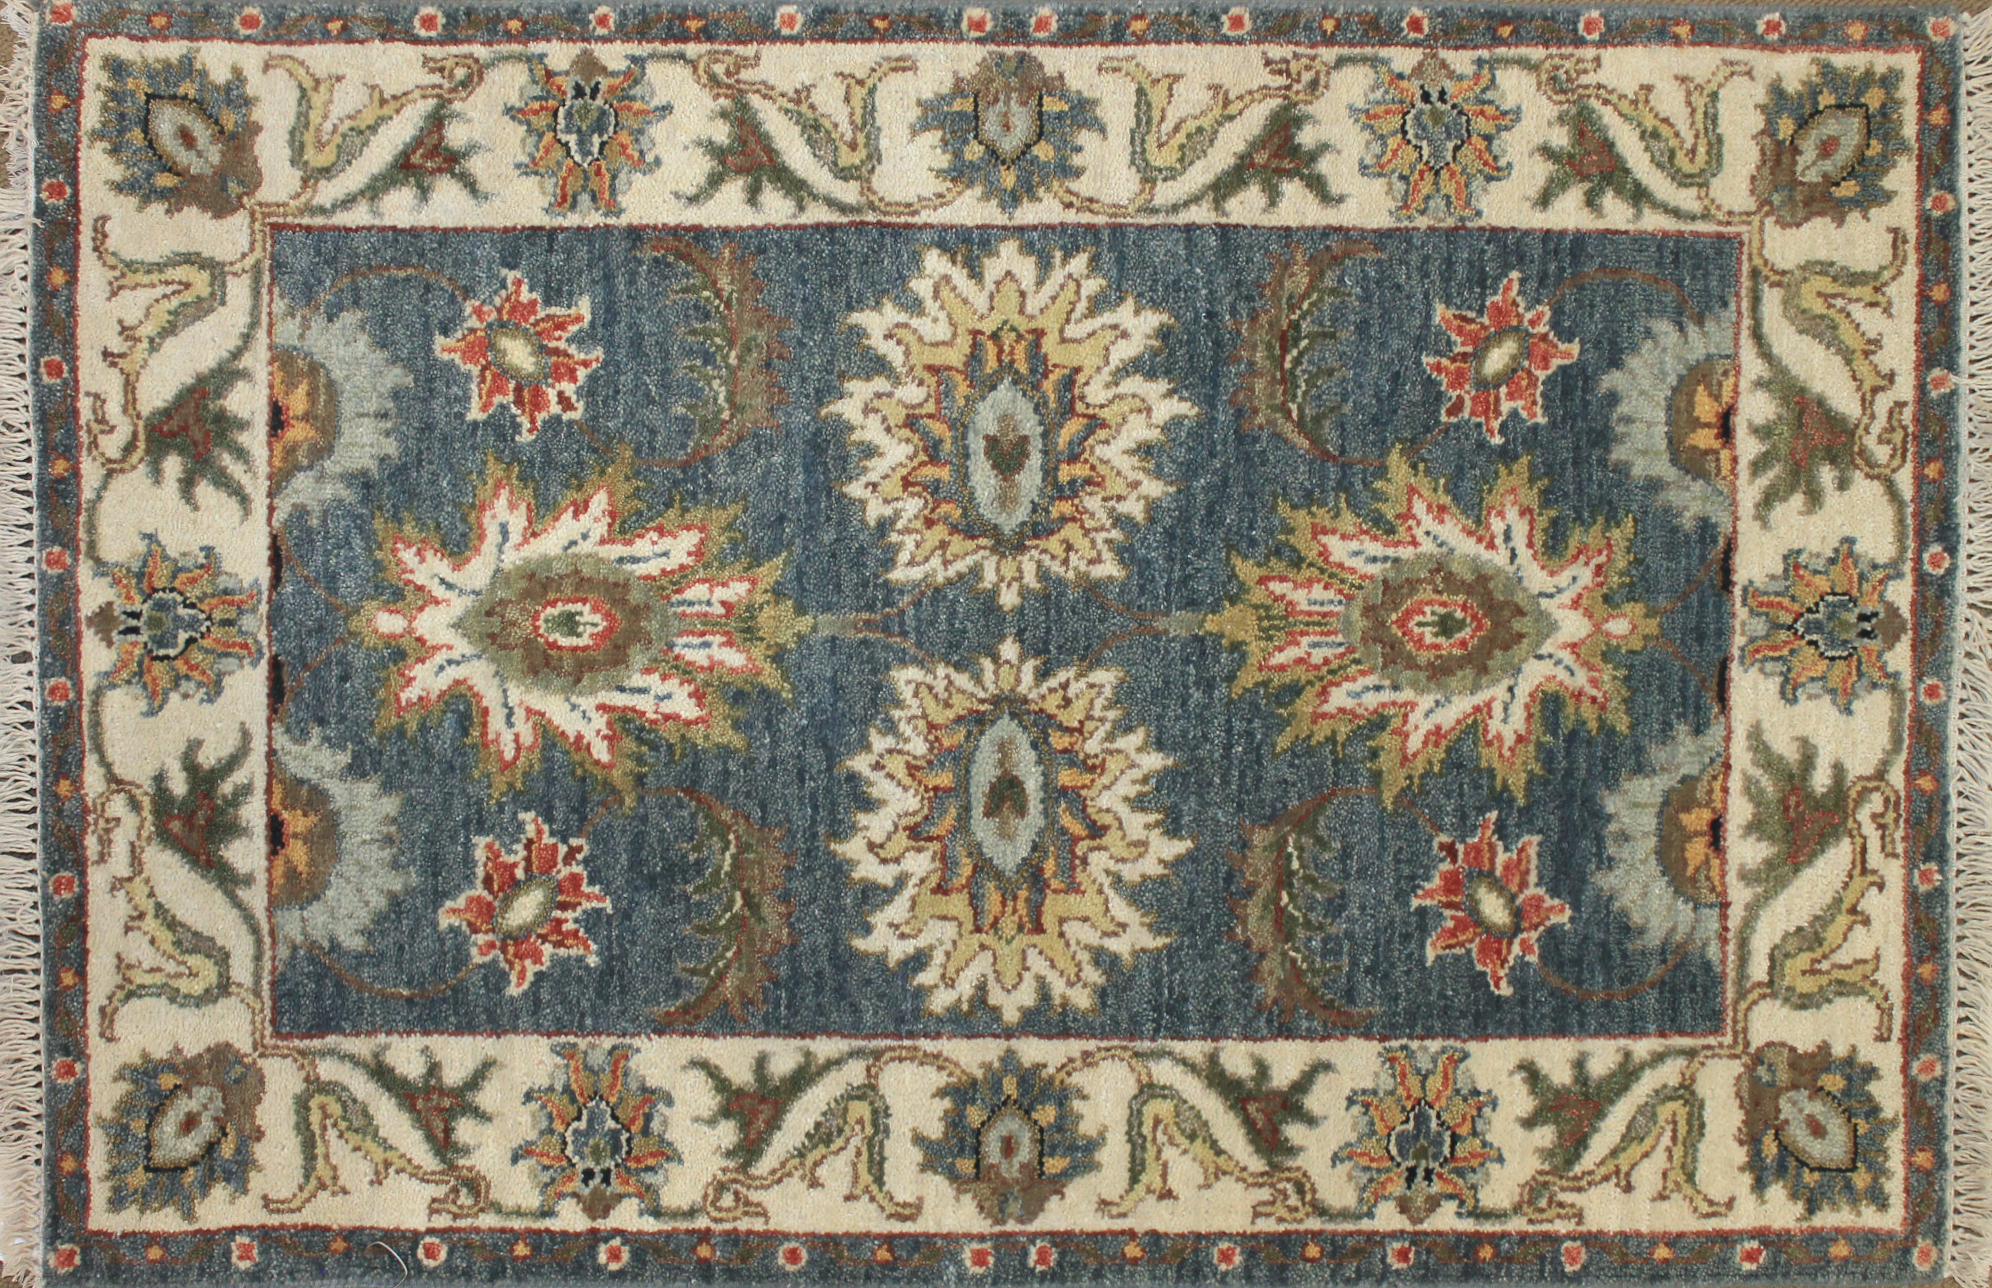 2X3 Oriental Hand Knotted Wool Area Rug - MR025528